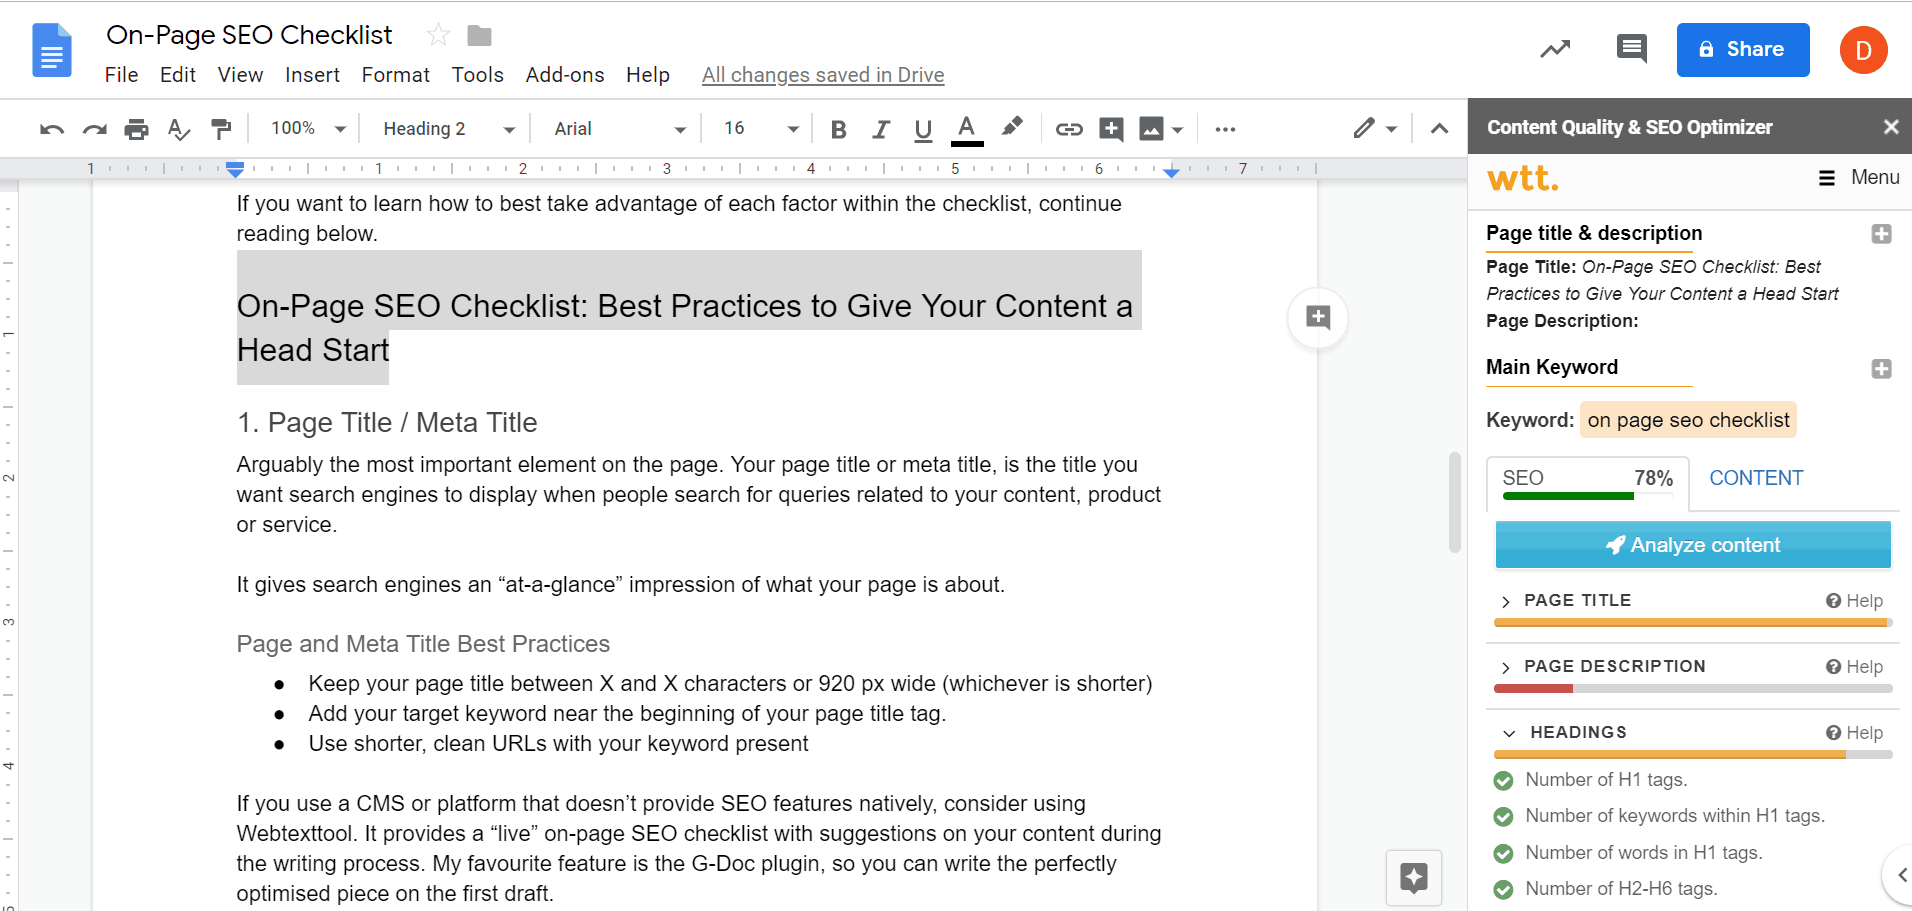 On-Page SEO Checklist: Best Practices to Get Your Content a Head Start